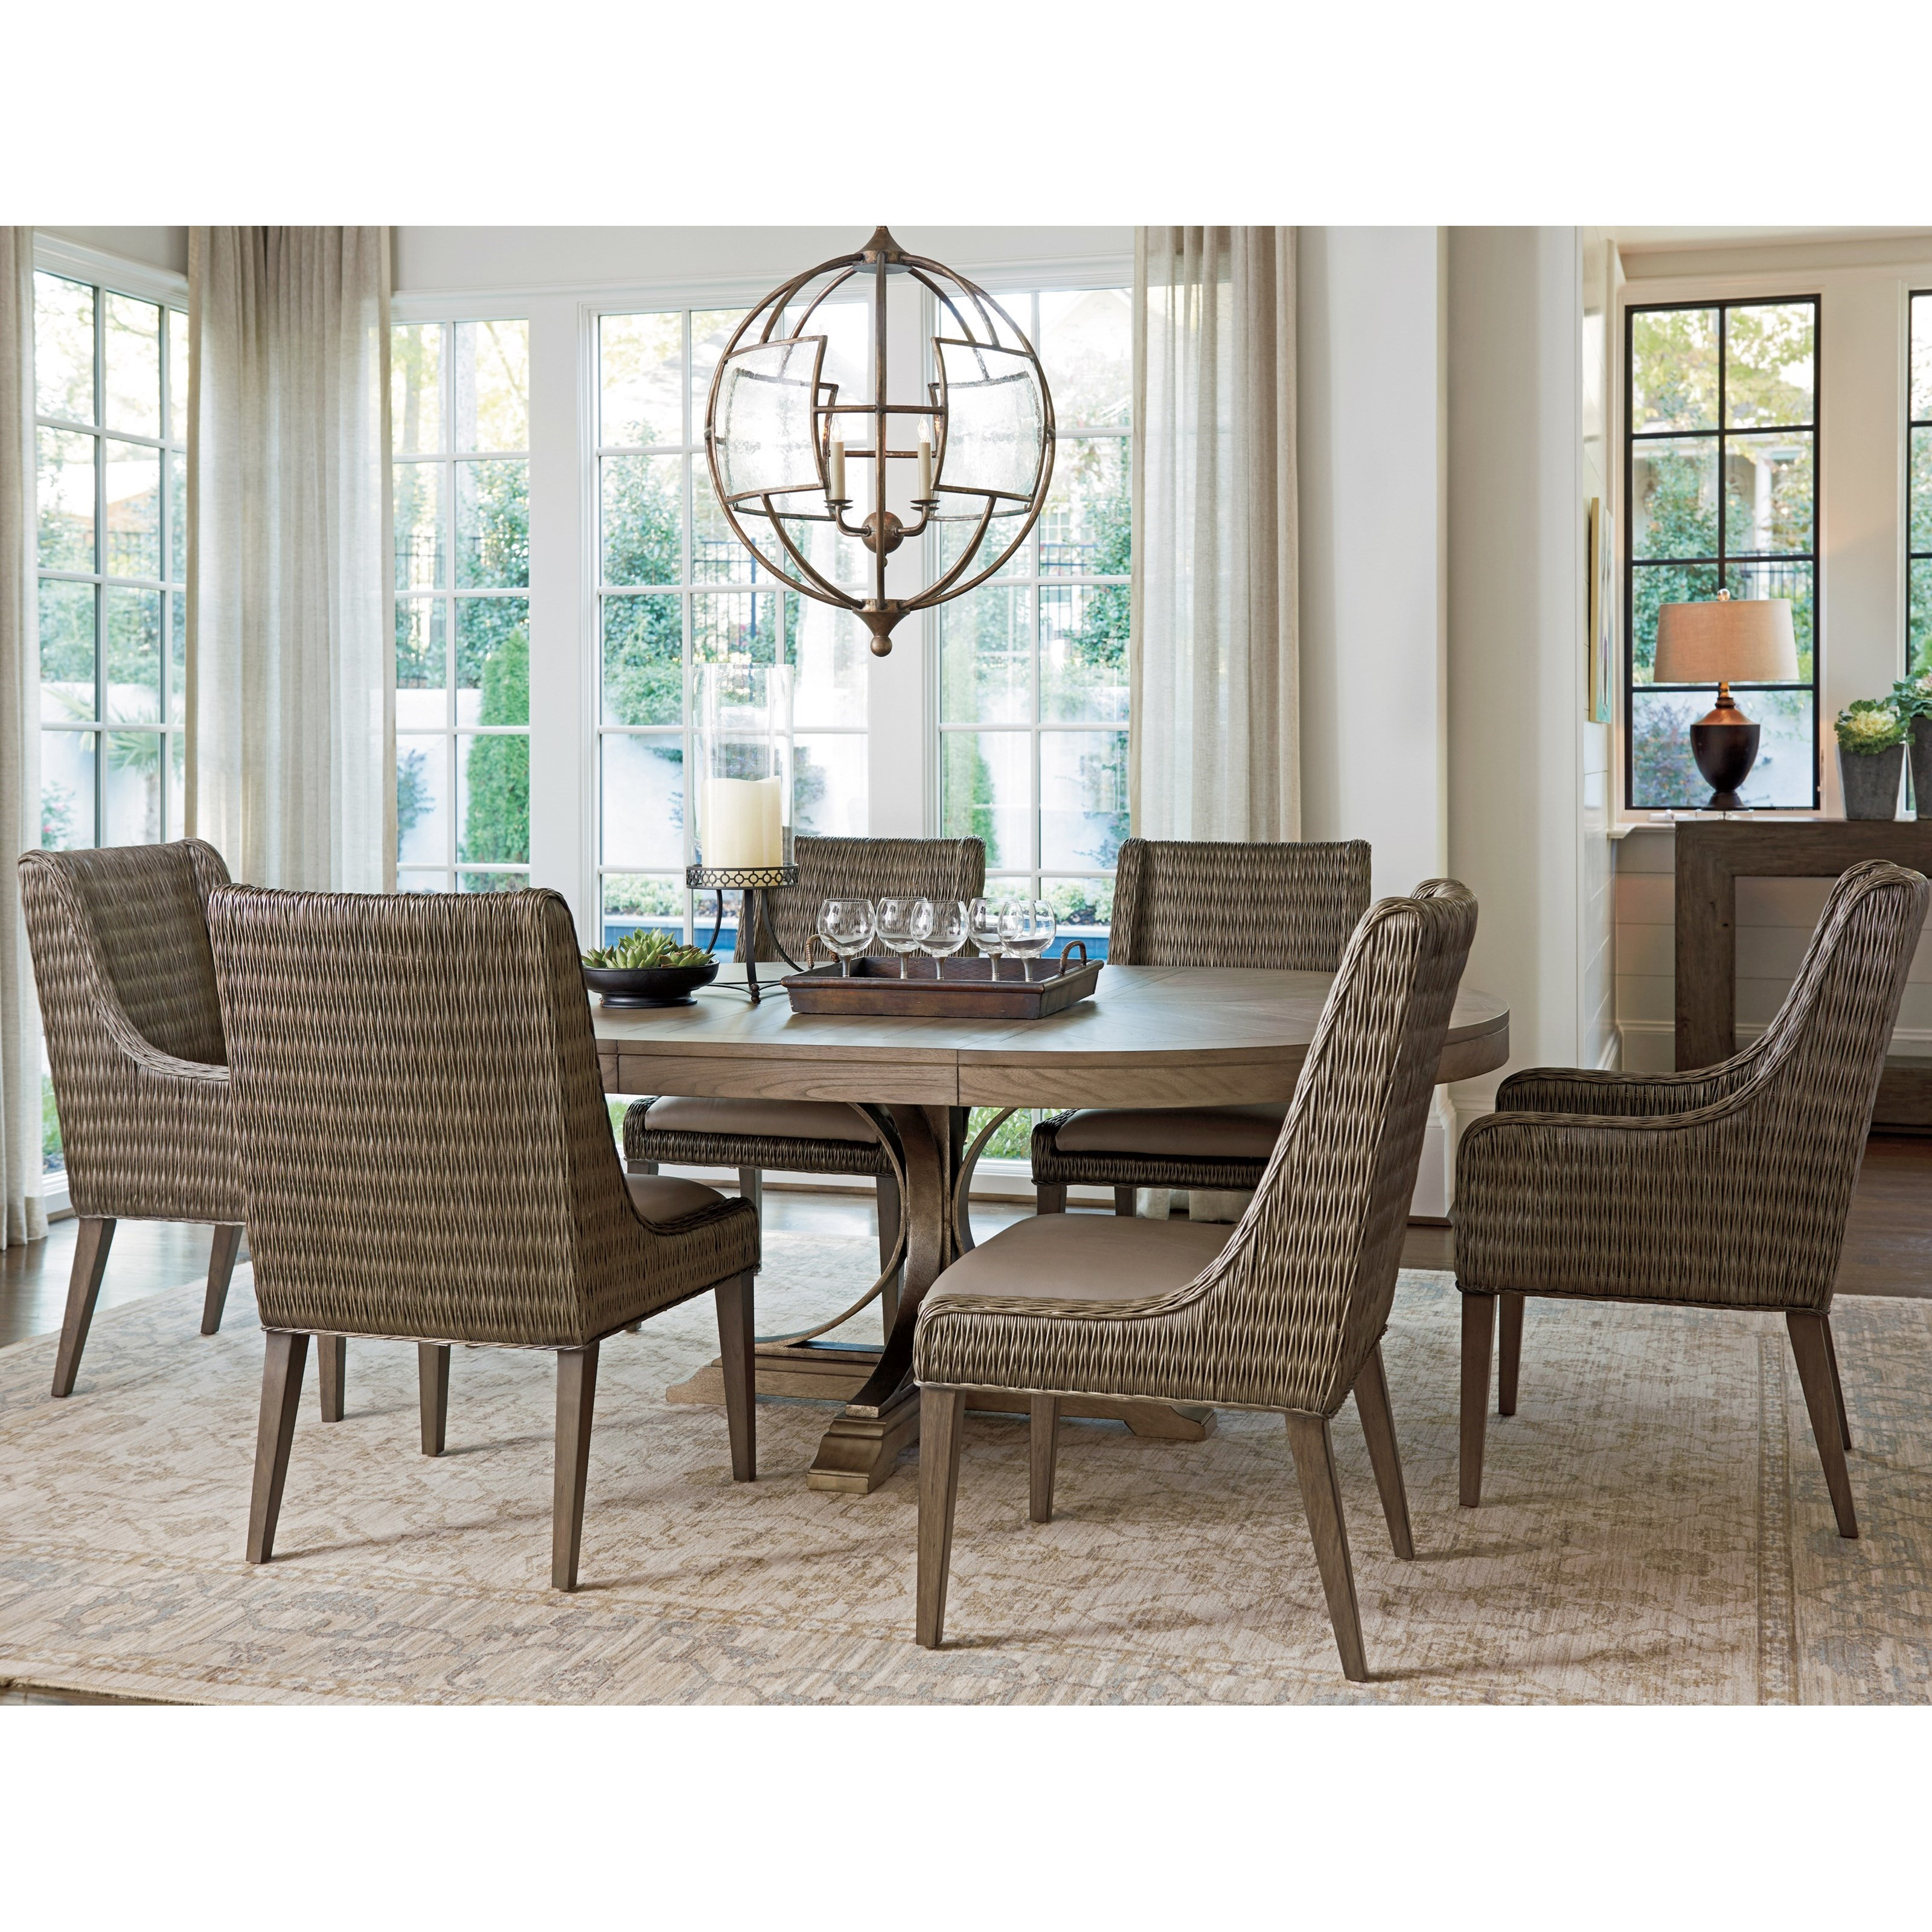 Cypress Point 7 Pc Dining Set by Tommy Bahama Home at Baer's Furniture